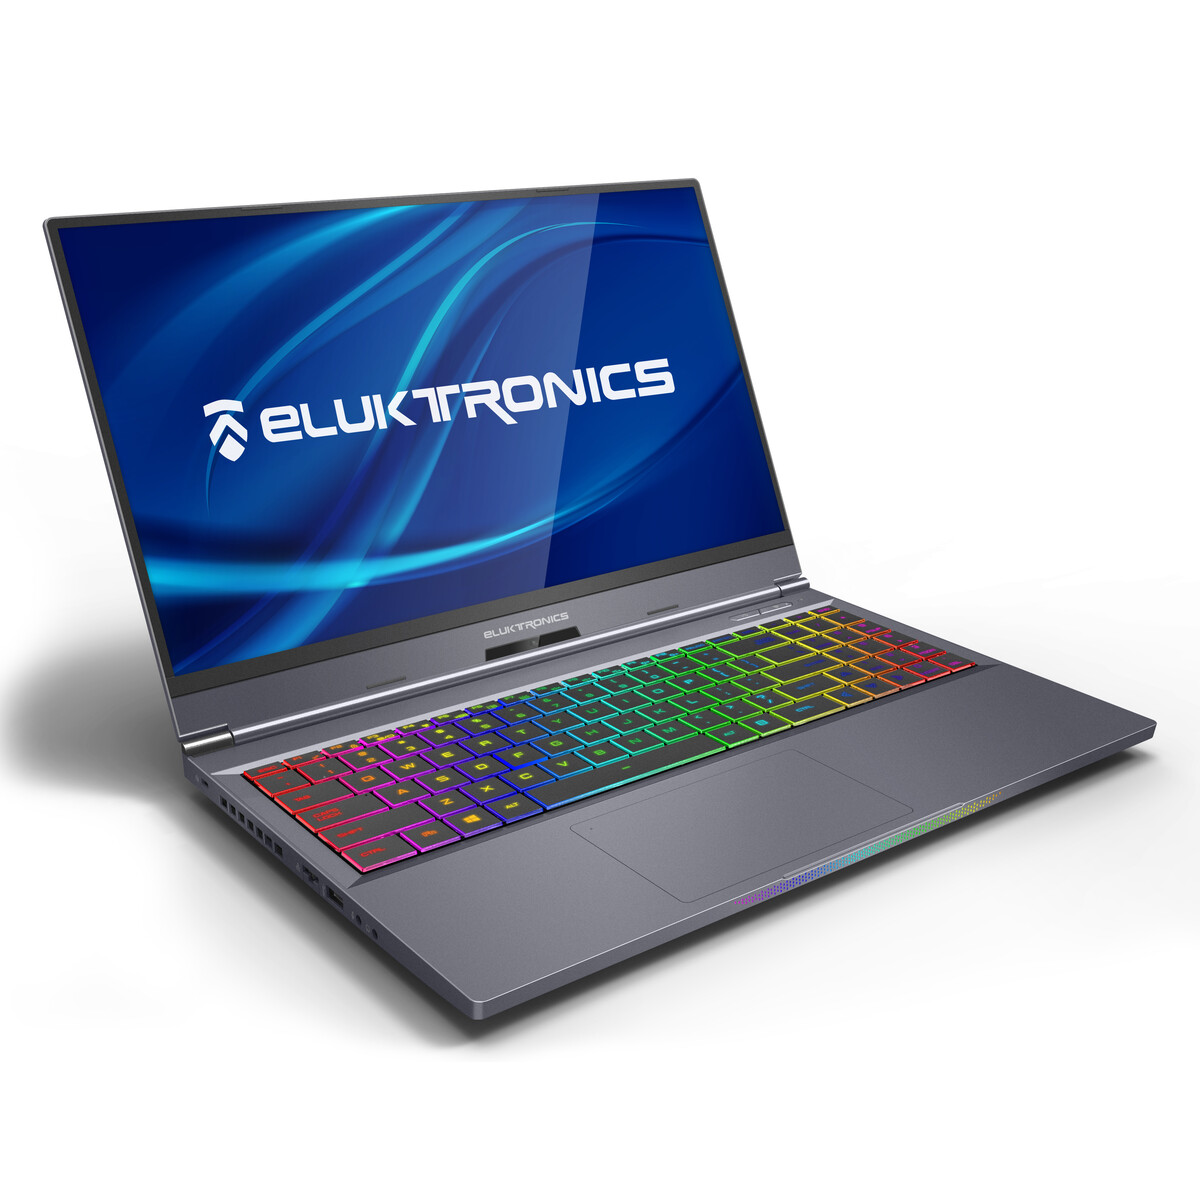 Eluktronics Announces Max 15 And Max 17 Gaming Laptops The Lightest 15 Inch And 17 Inch Gaming Laptops On The Market Notebookcheck Net News